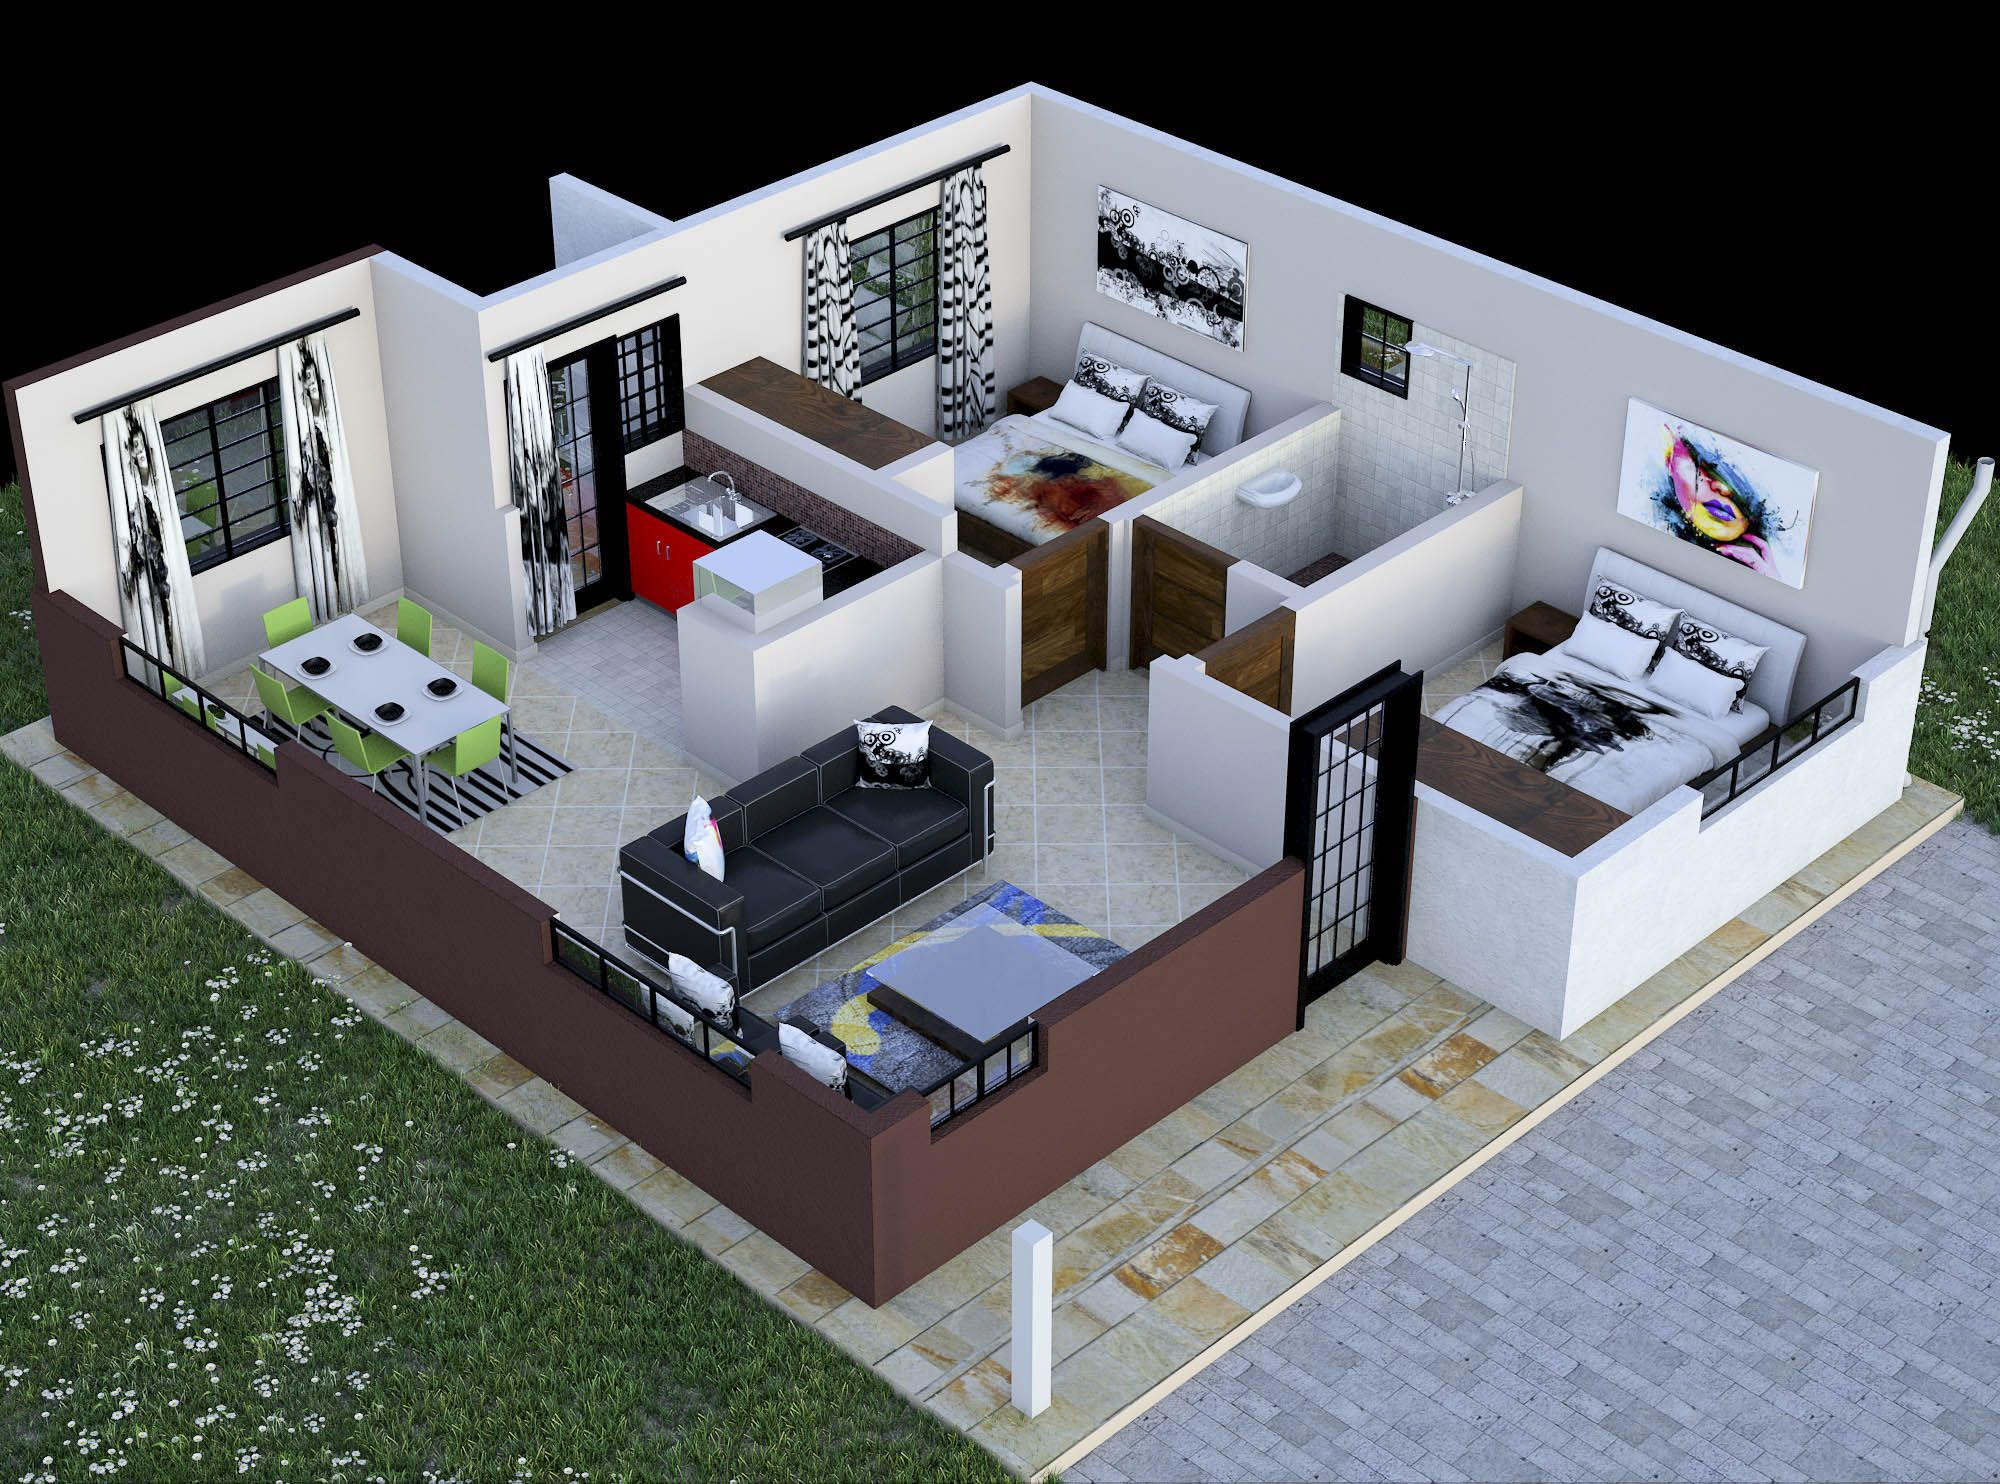 Pleasing kenya house plans koto housing kenya koto house designs kenya house plans 3 bedrooms kenya home plans